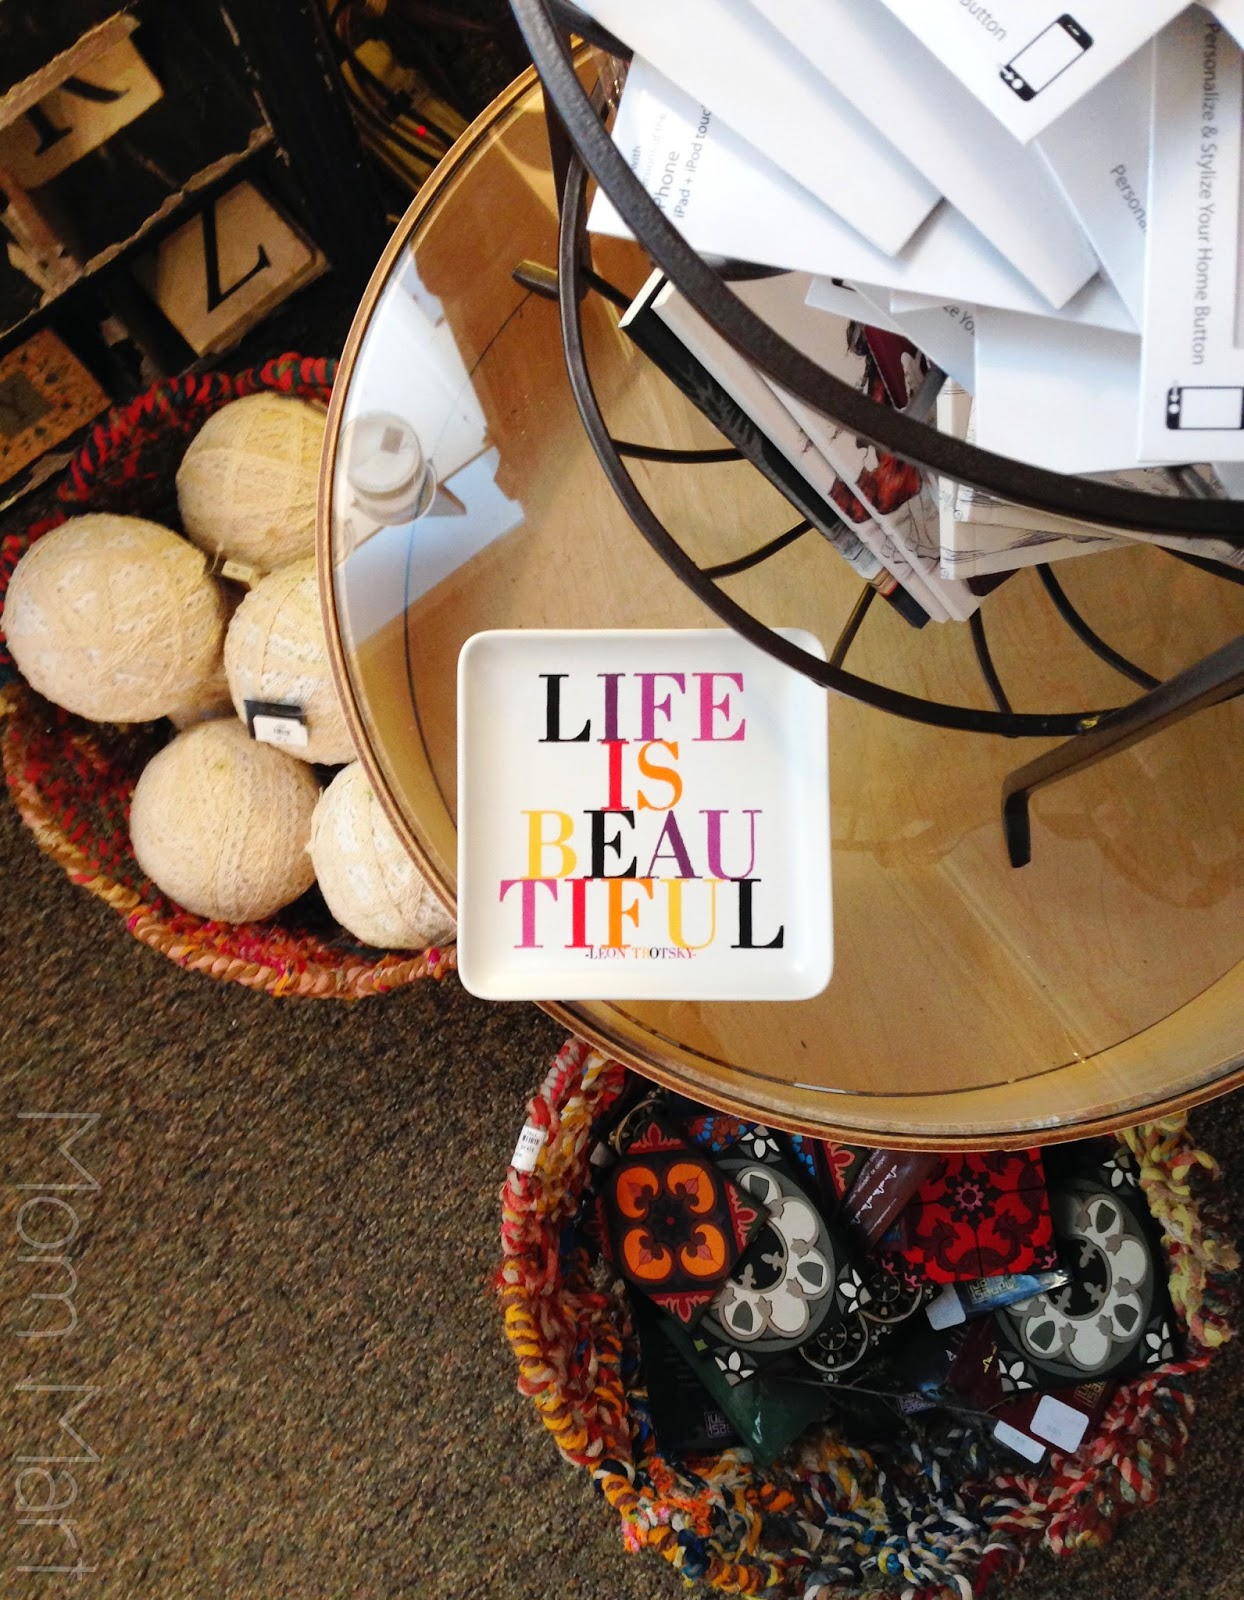 Shopping for home goods #Shopping #ForTheHome #Decorate #LifeIsBeautiful #HomeDecor